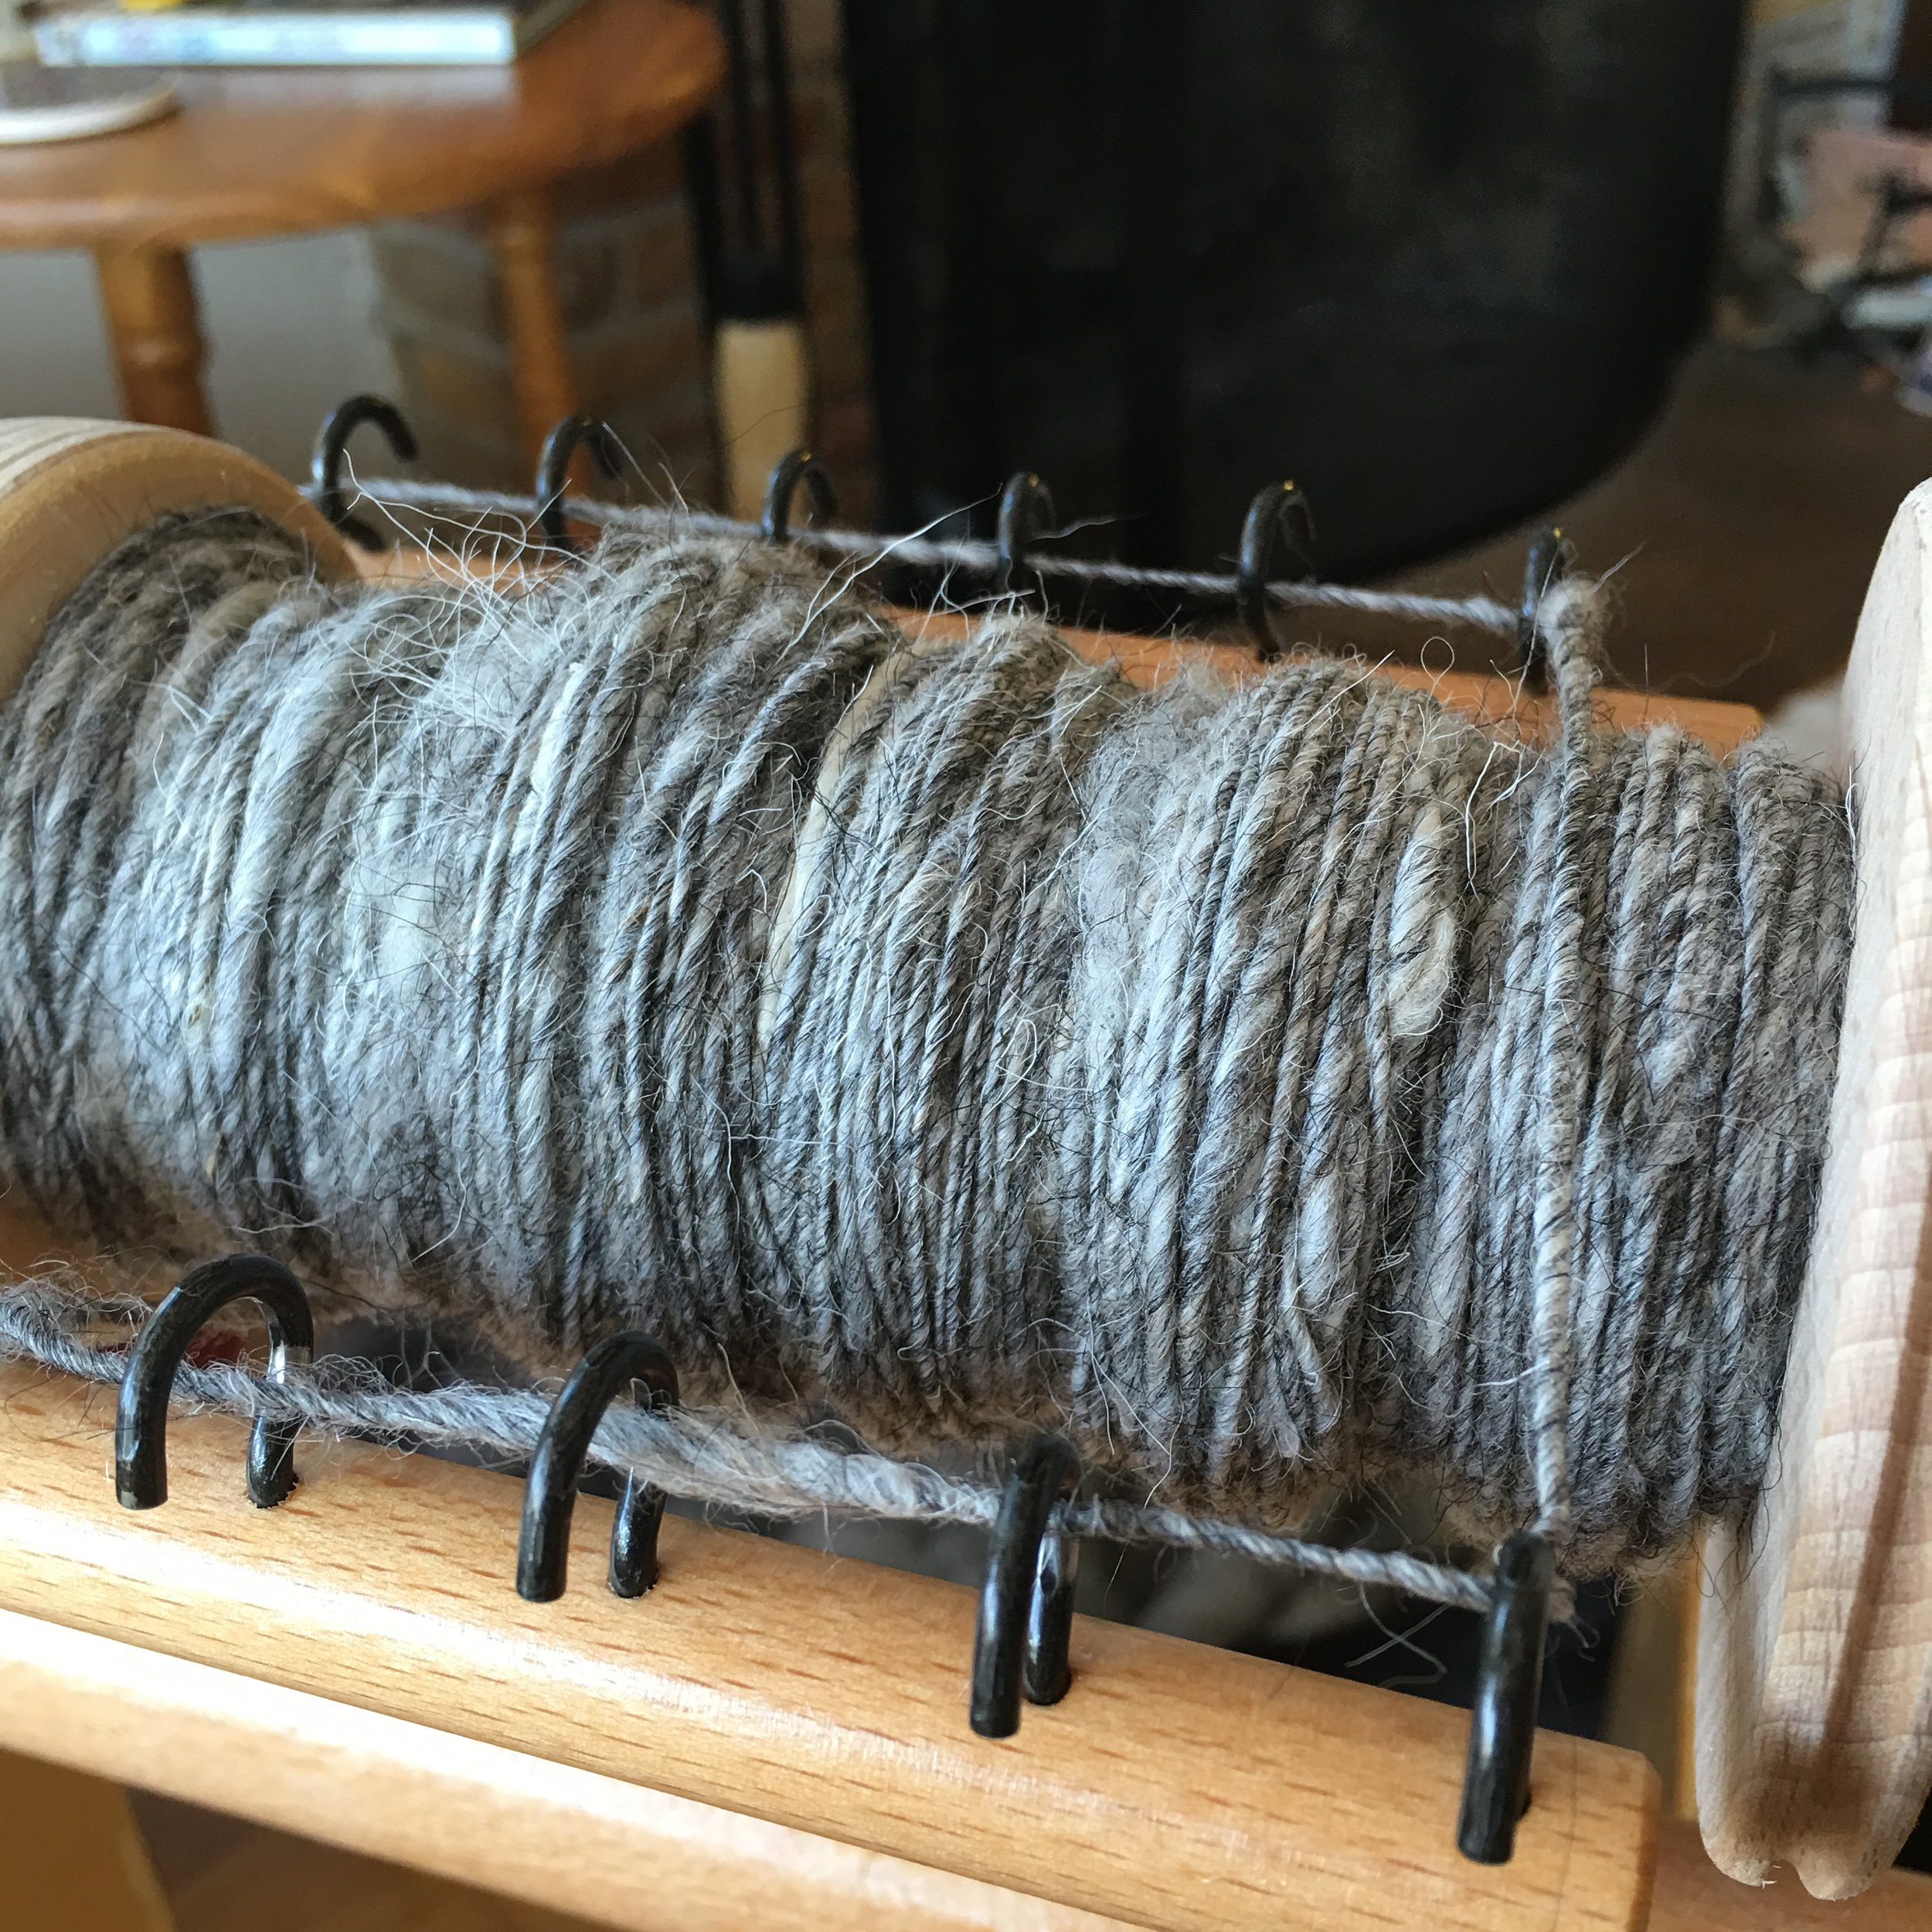 In process on the bobbin.